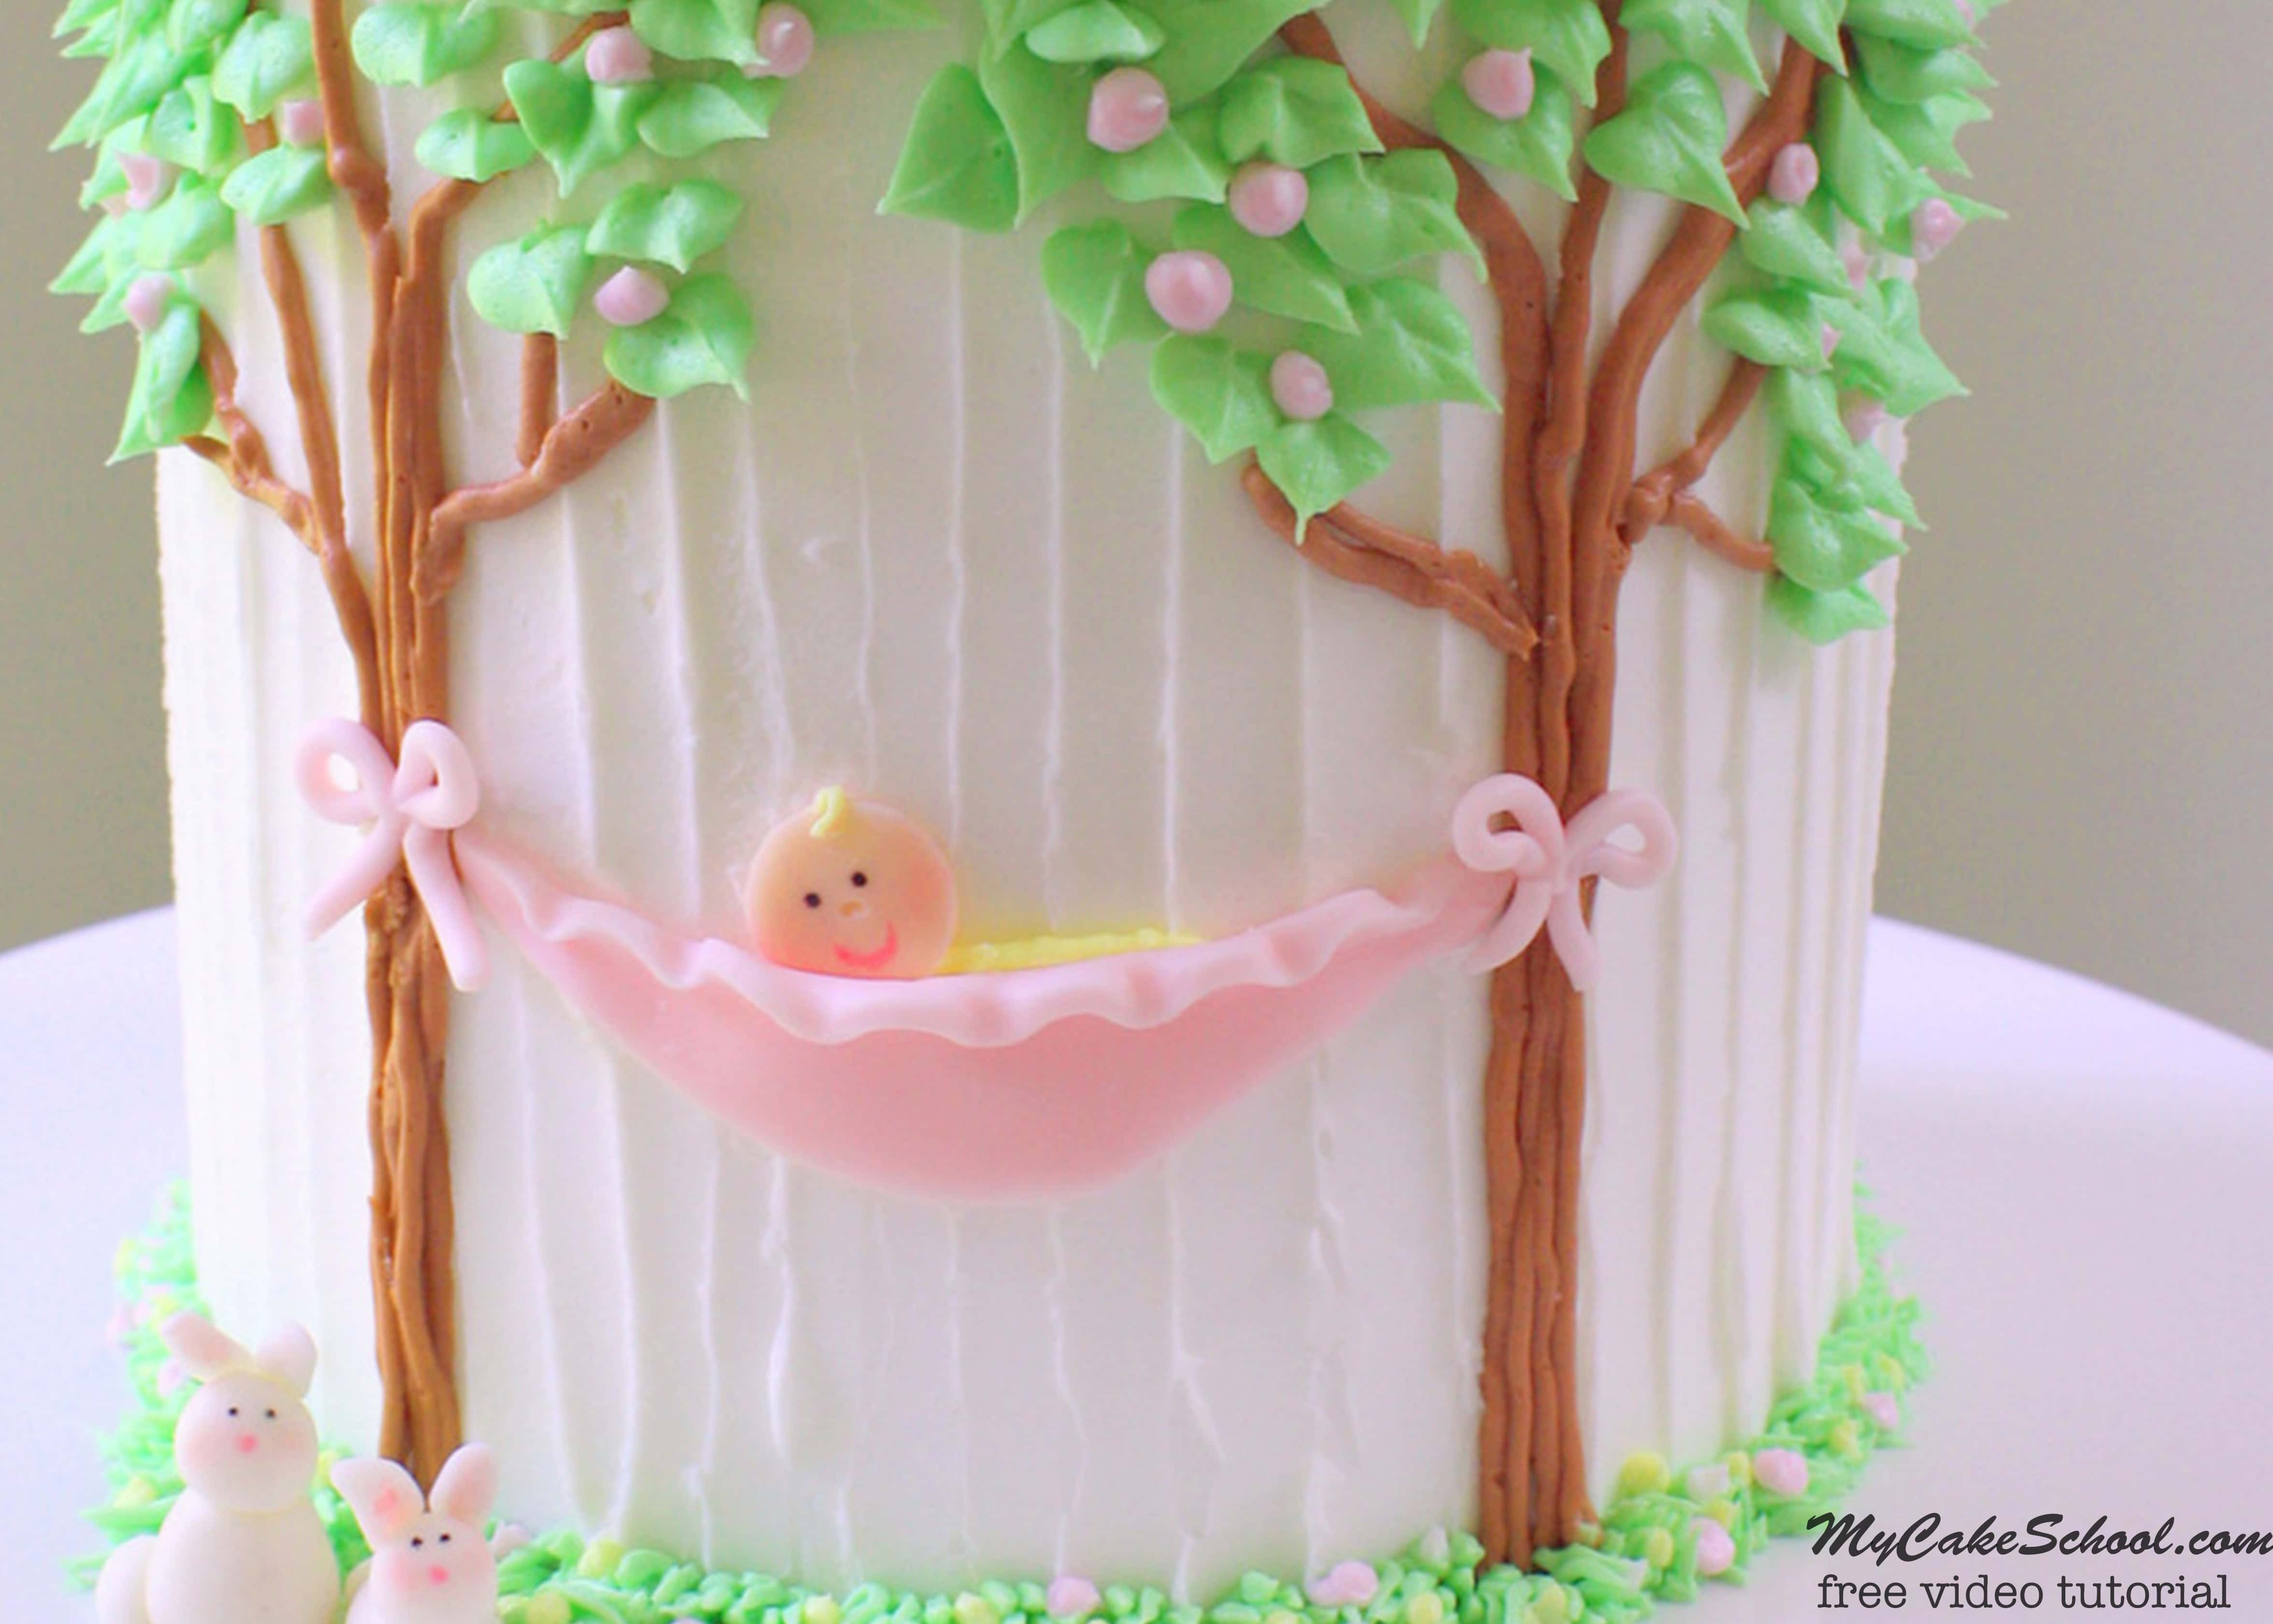 Sweet Baby in a Hammock Cake Decorating Video Tutorial by MyCakeSchool.com. Simple and sweet design PERFECT for Baby Shower Cakes! Free video!